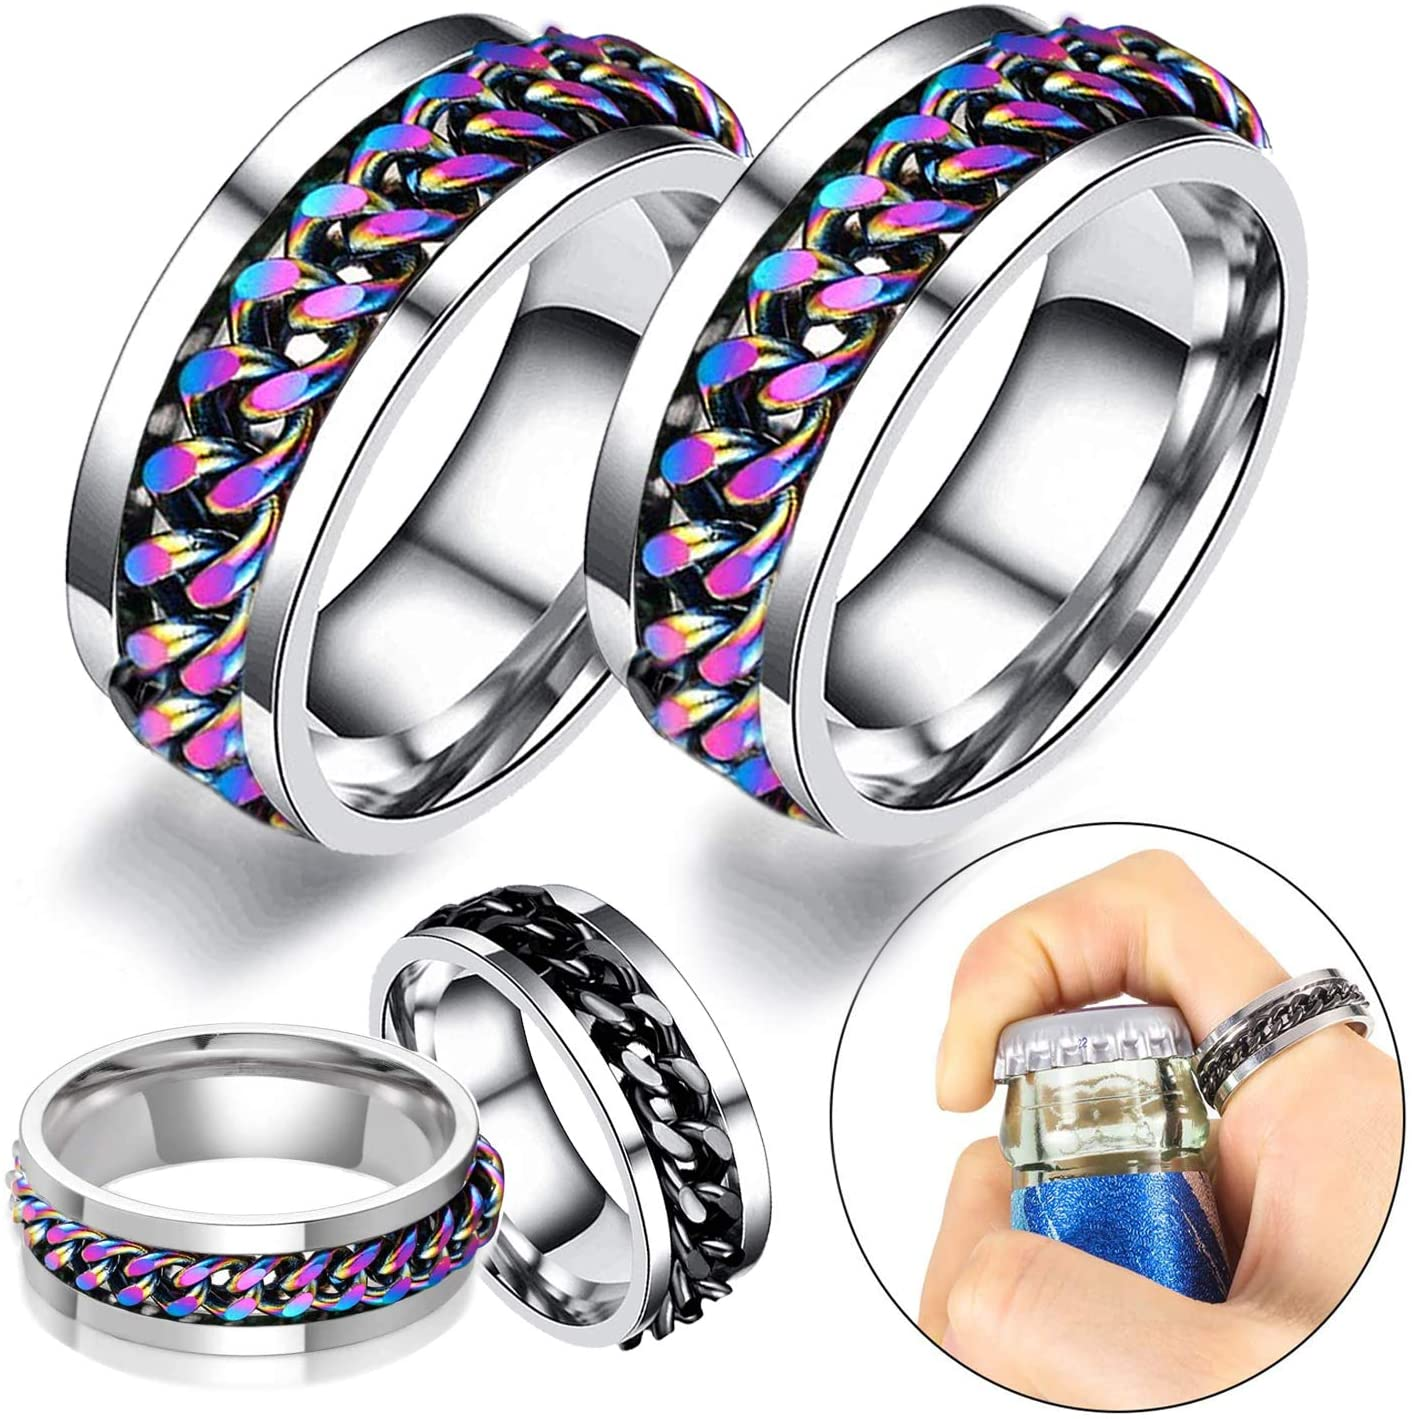 Byhoo Ring Bottle Opener Tool Magic Colorful Special for Women men Polished Personalized Titanium Stainless Steel with Inner Hyun Color Chain Perfect Jewelry Gift Silver + Hyun Color, Size 10 (2 PCS)